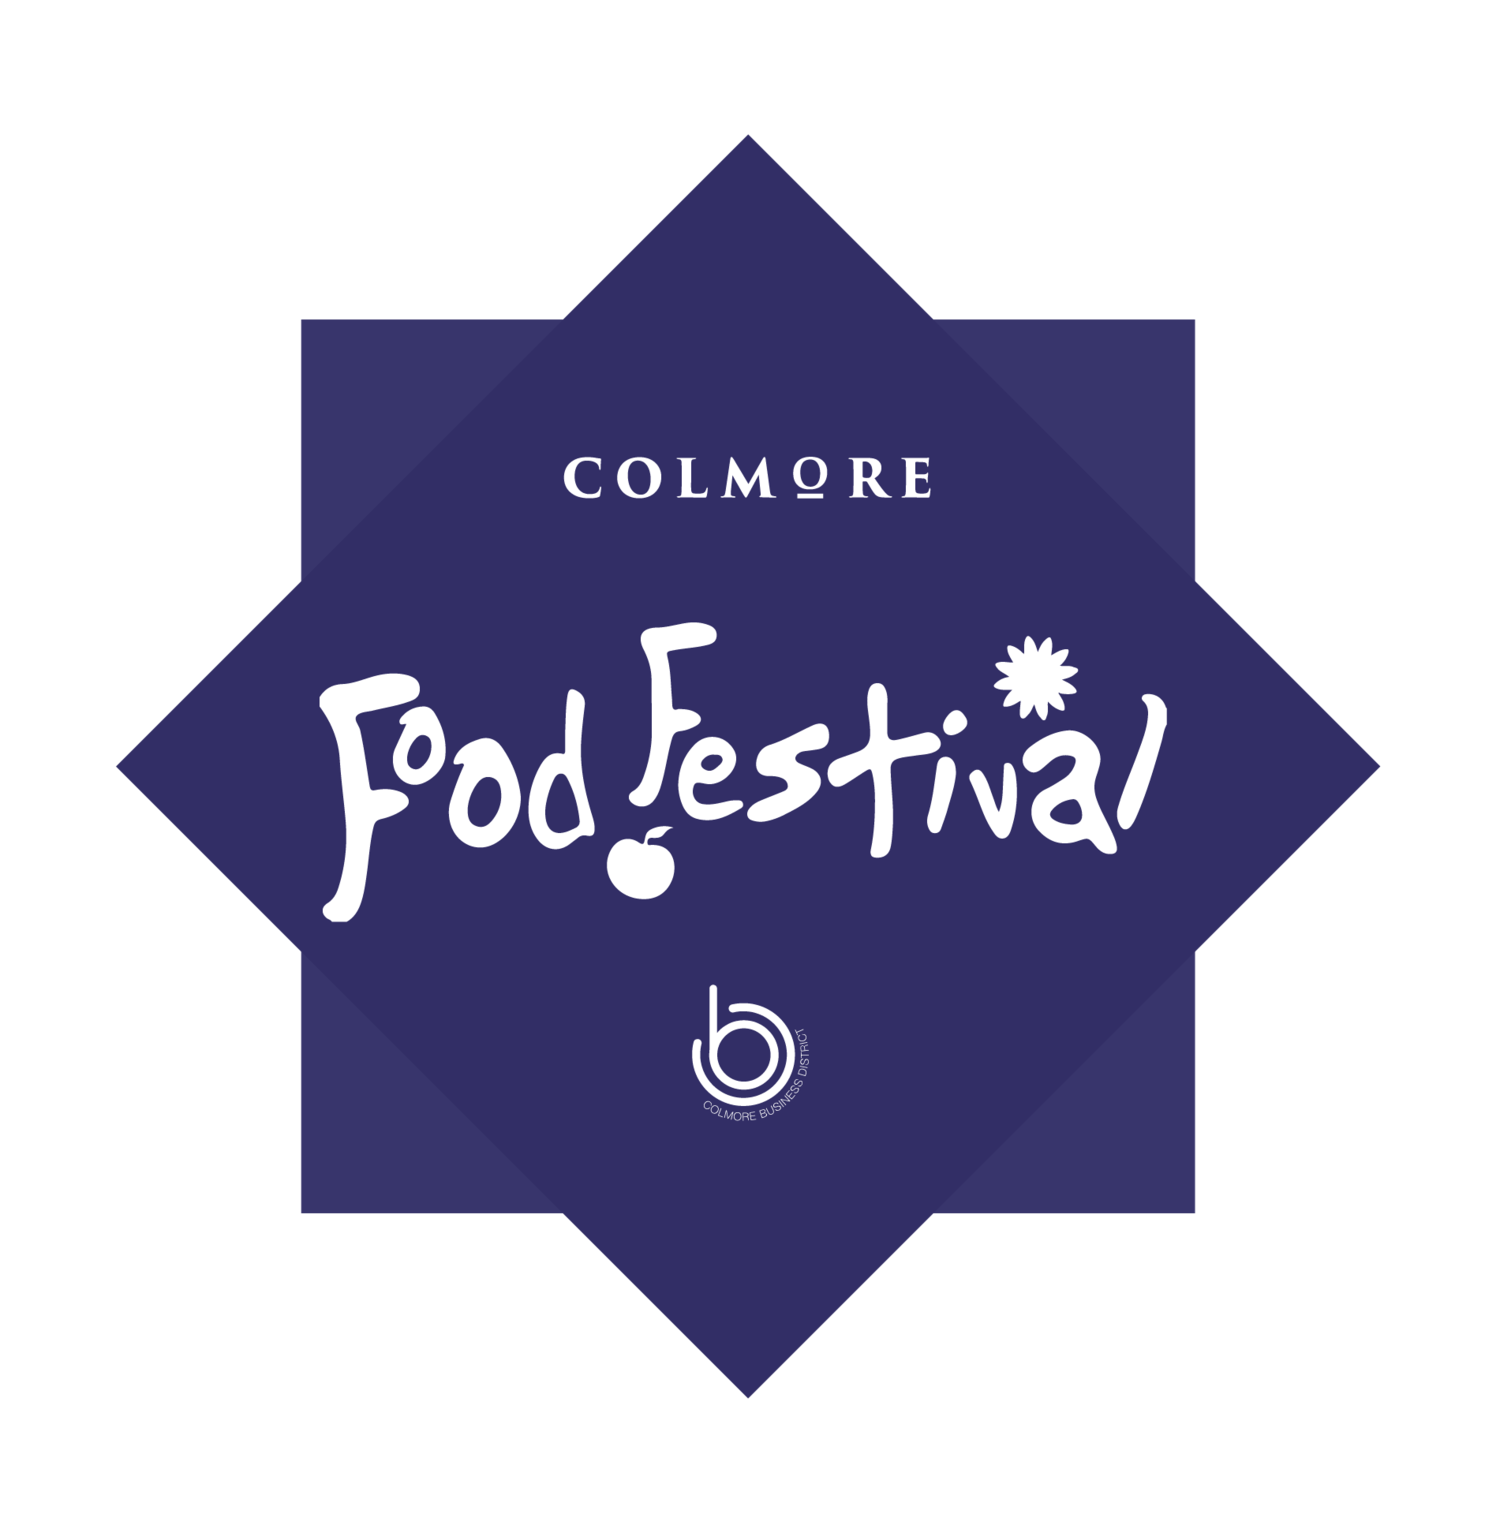 Colmore Food Festival